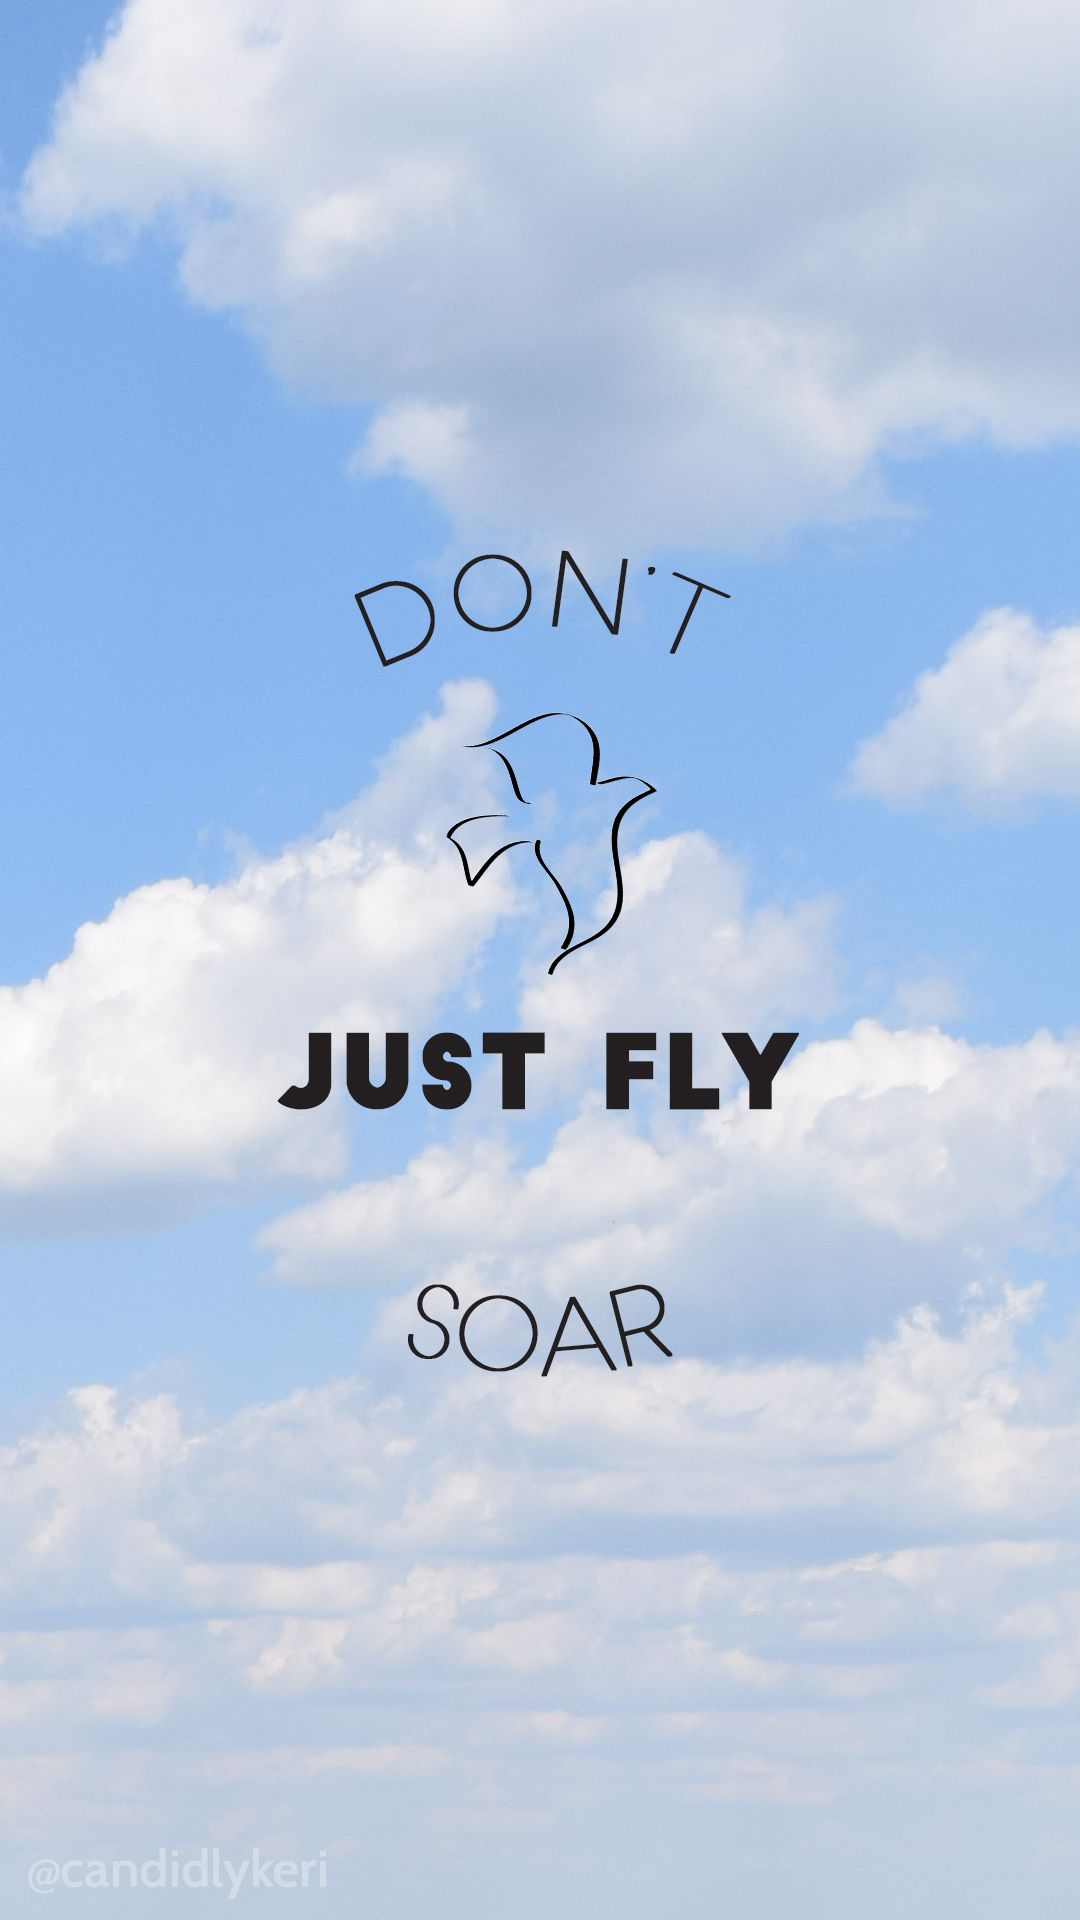 dont just fly soar cloud adventure background wallpaper you can download for free